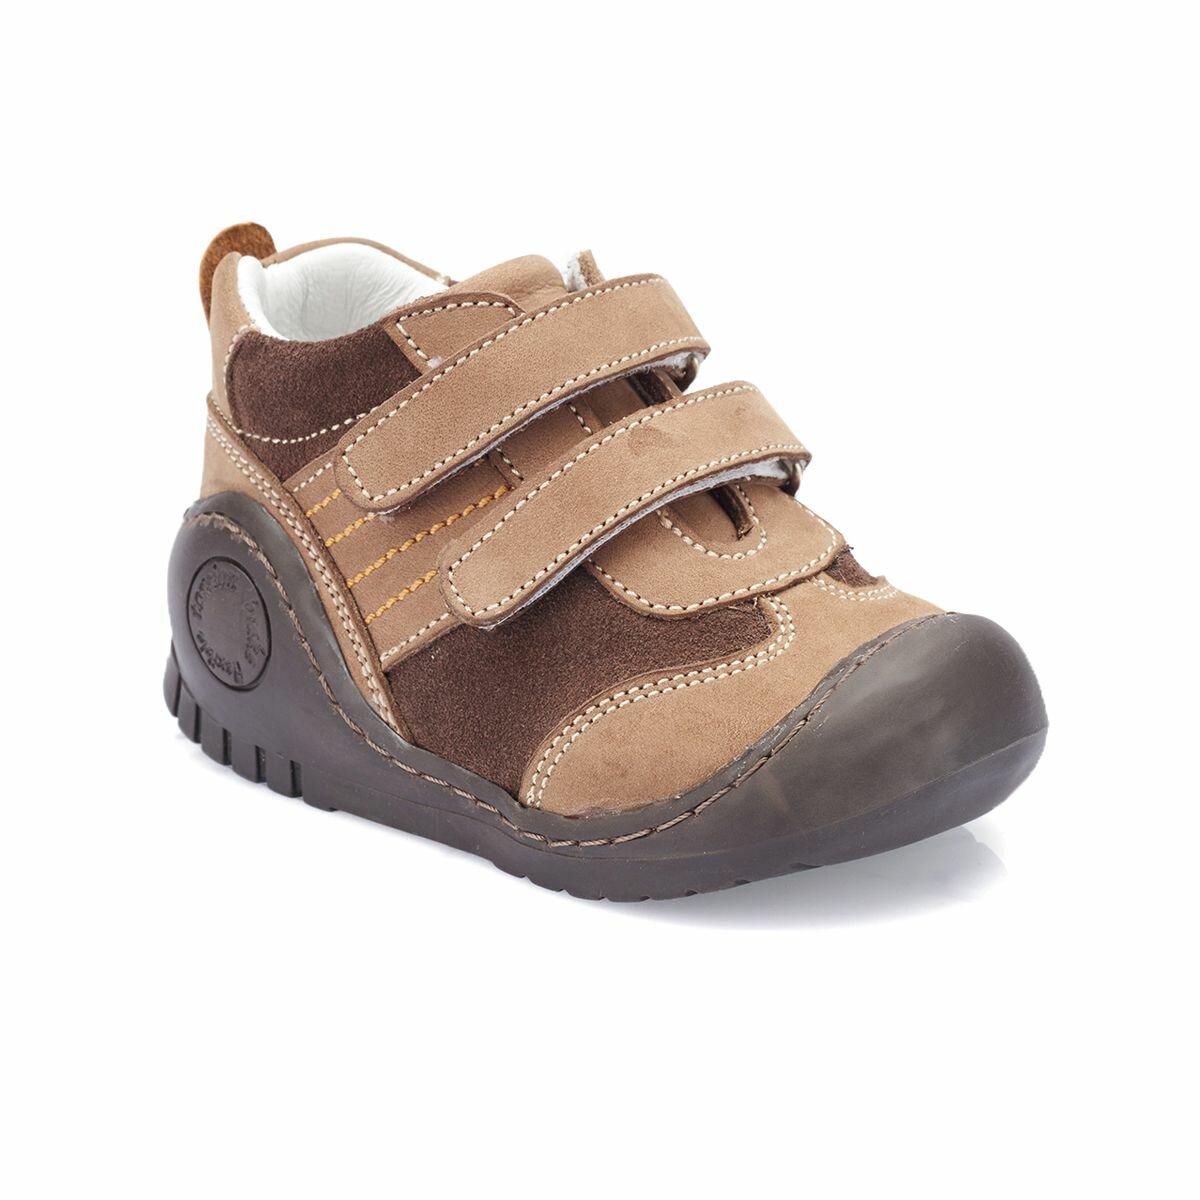 FLO 82.510539.I Brown Male Child Boots Polaris